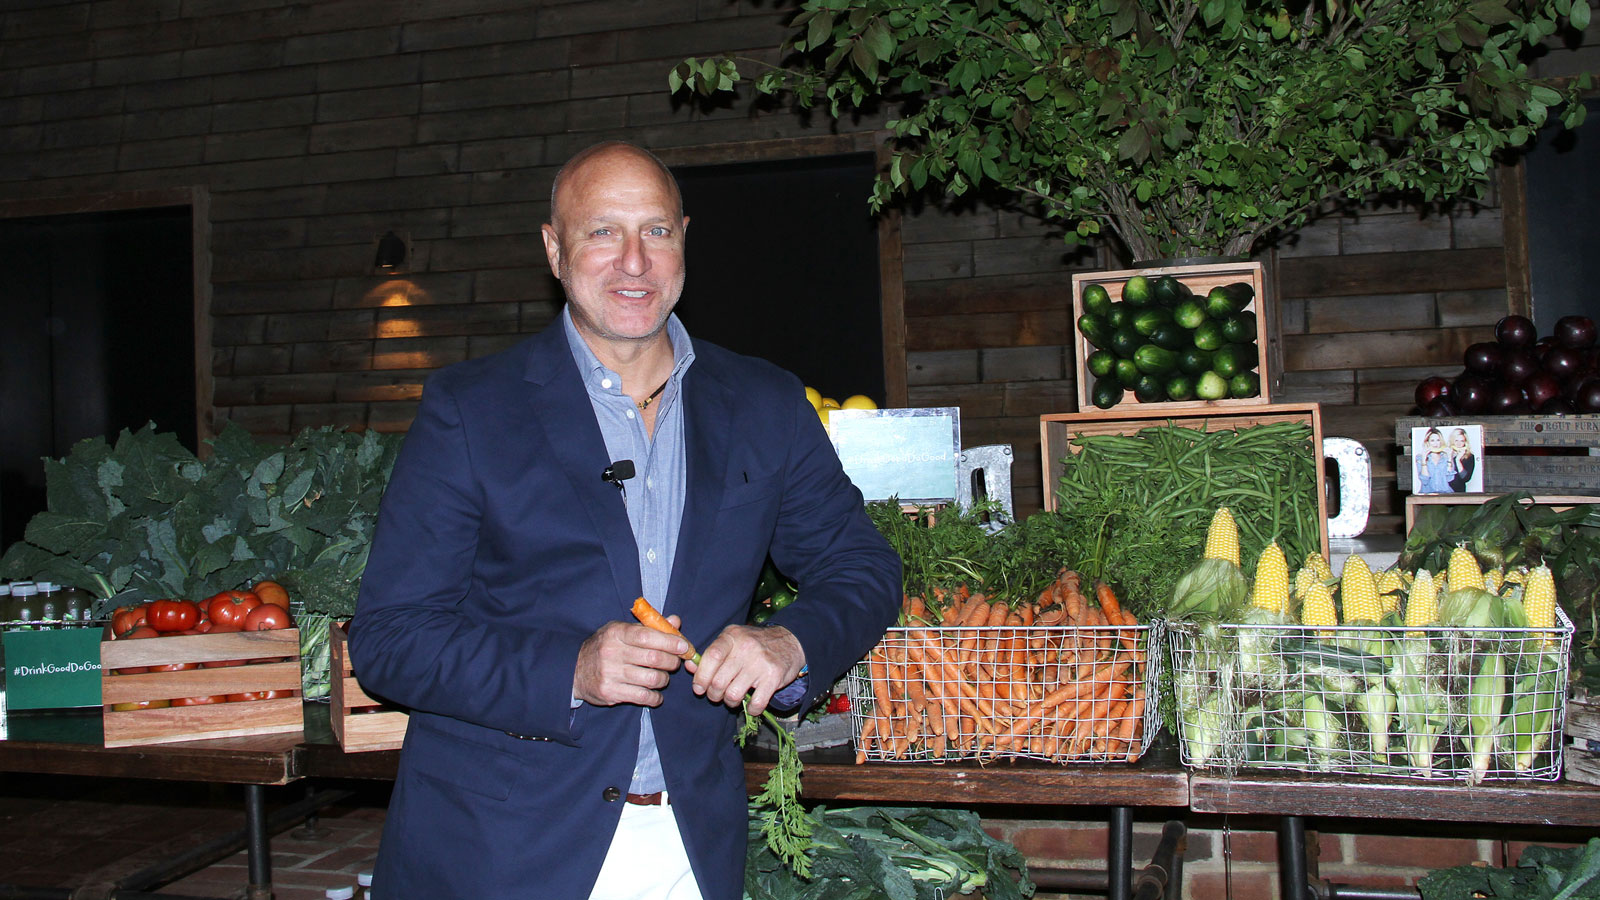 tom-colicchio-gardening-tips-FT-BLOG0417.jpg